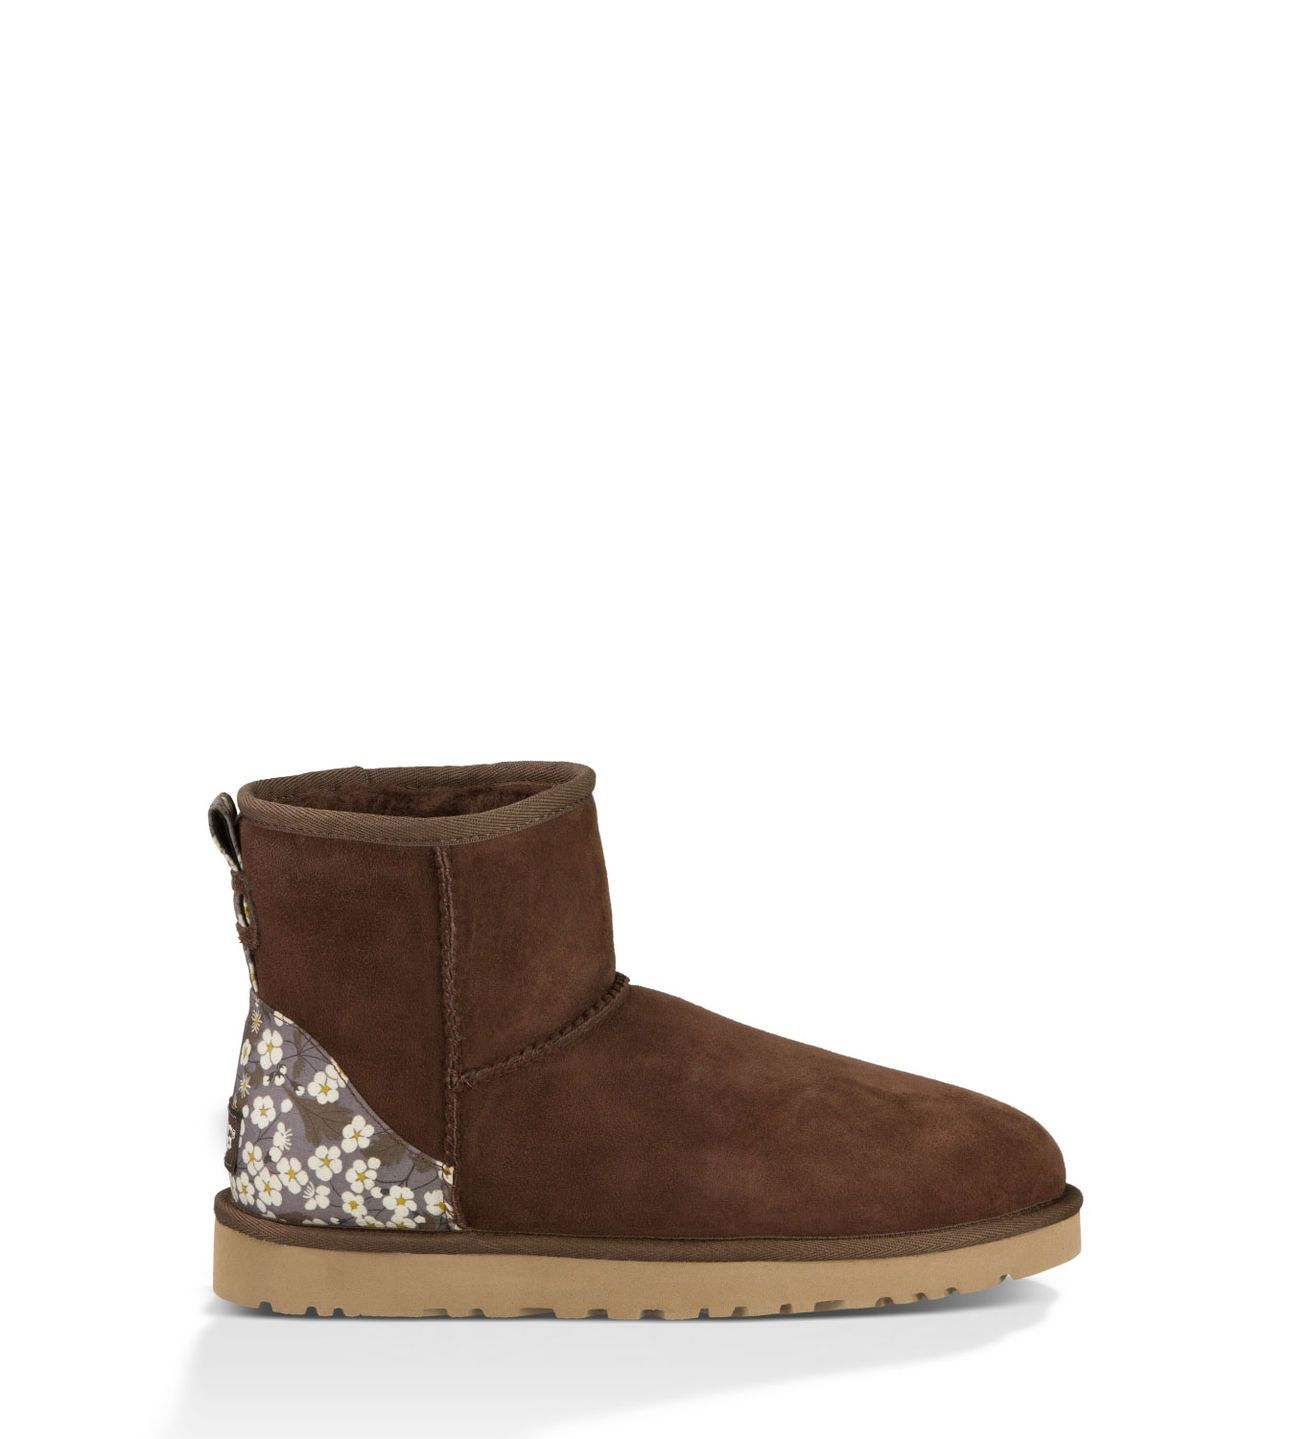 f33270cef53 Original UGG® Classic Mini Liberty Boots for Women on the official ...